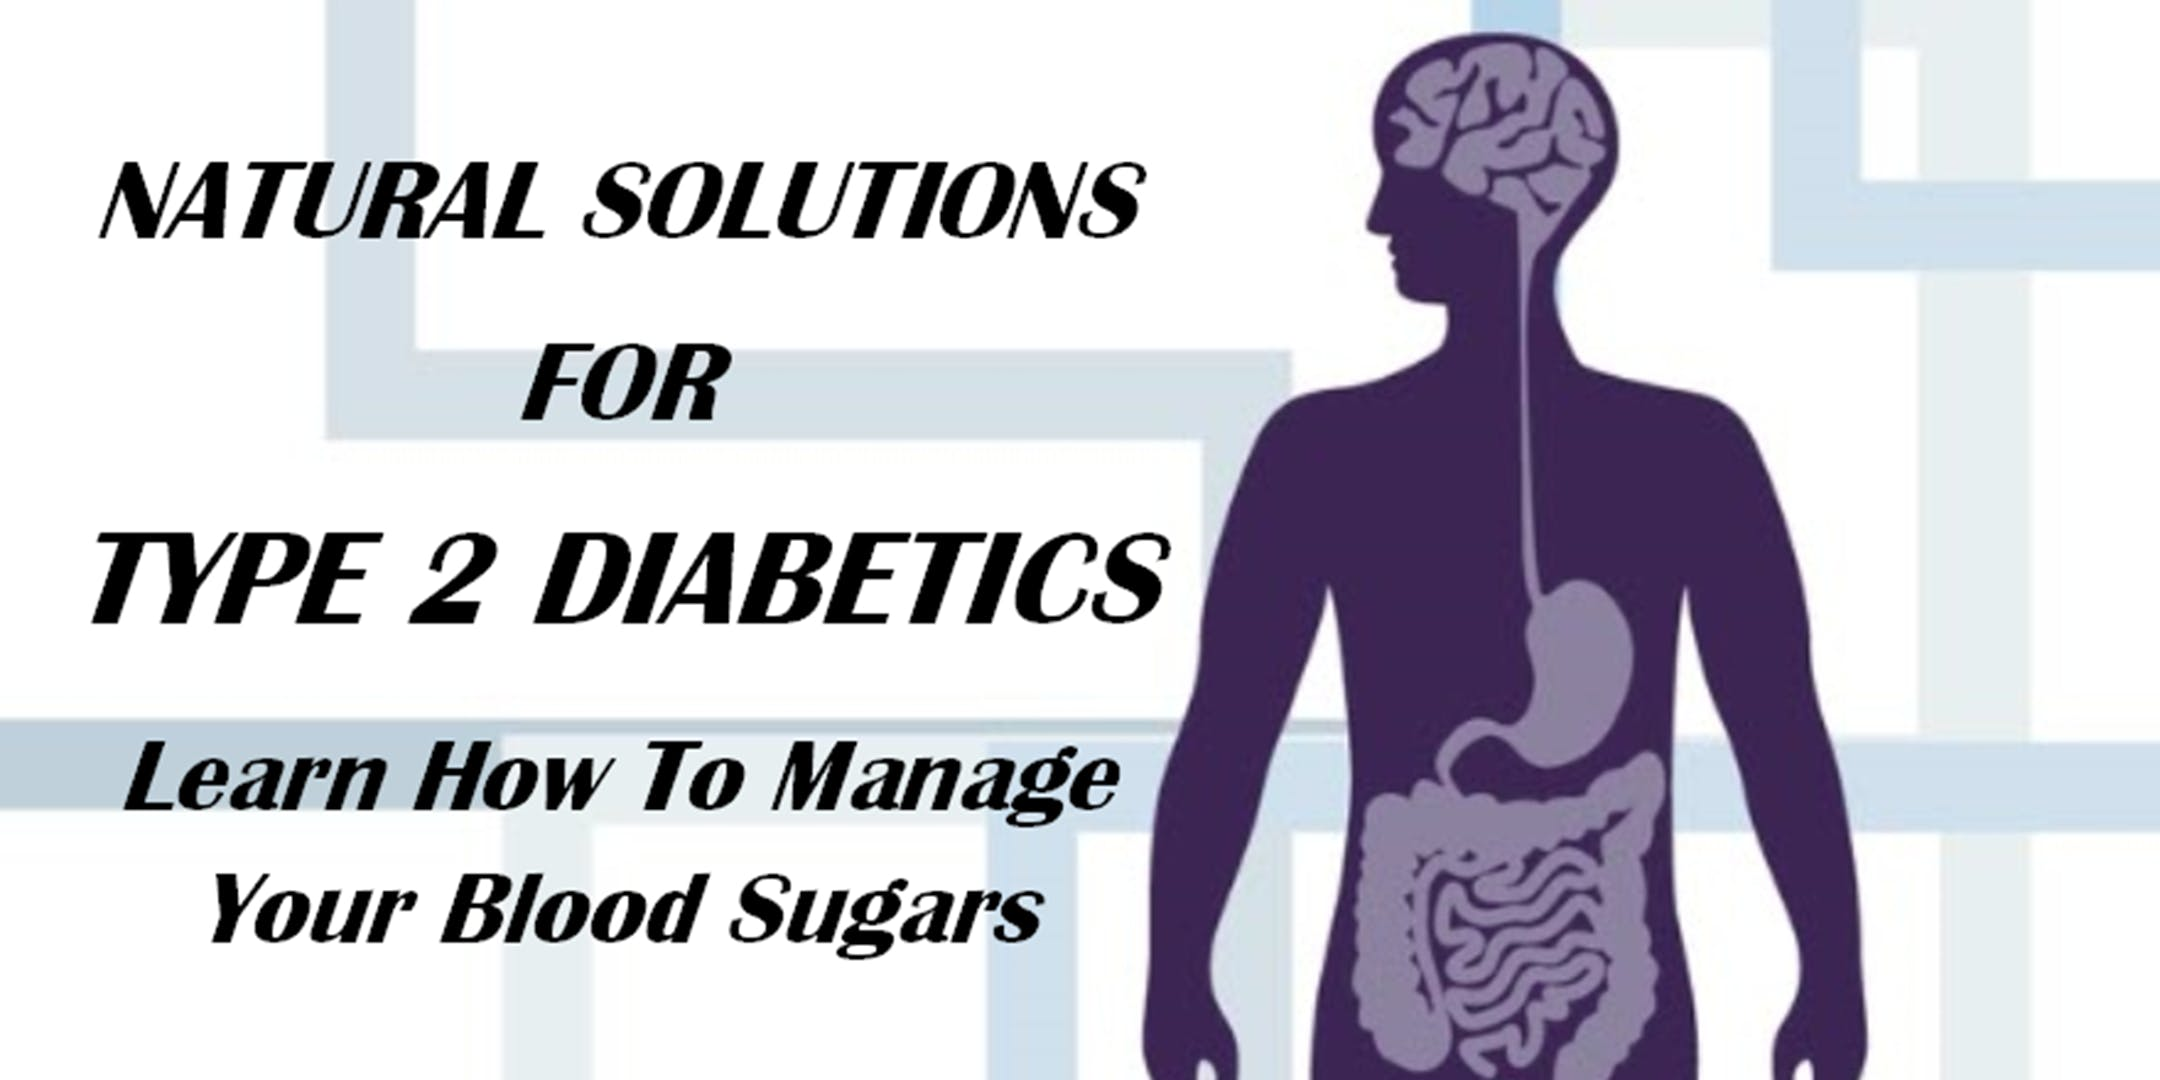 AZ01 / Natural Solutions for Type 2 Diabetics / Learn How To Manage Your Blood Sugars / Phoenix, AZ